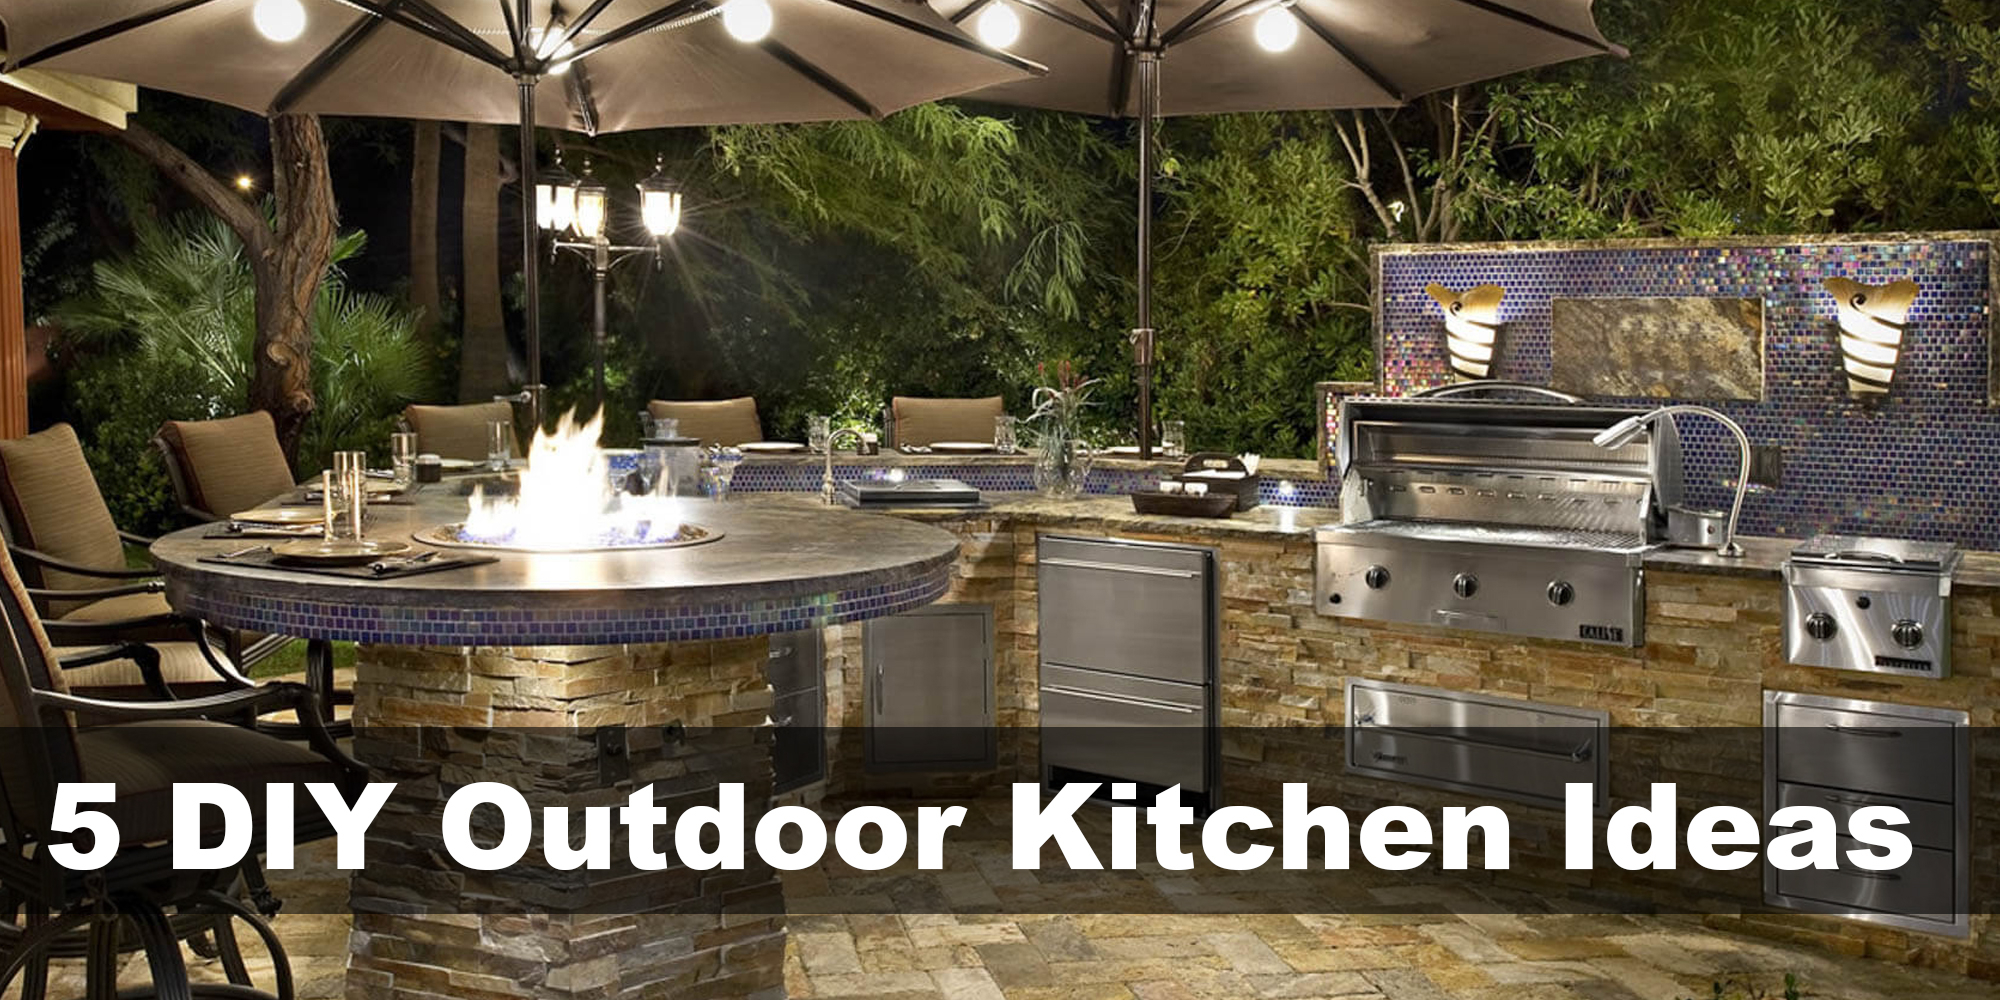 5 Diy Outdoor Kitchen Ideas To Transform Your Backyard To Fine Dining in 13 Clever Concepts of How to Make Backyard Kitchen Ideas